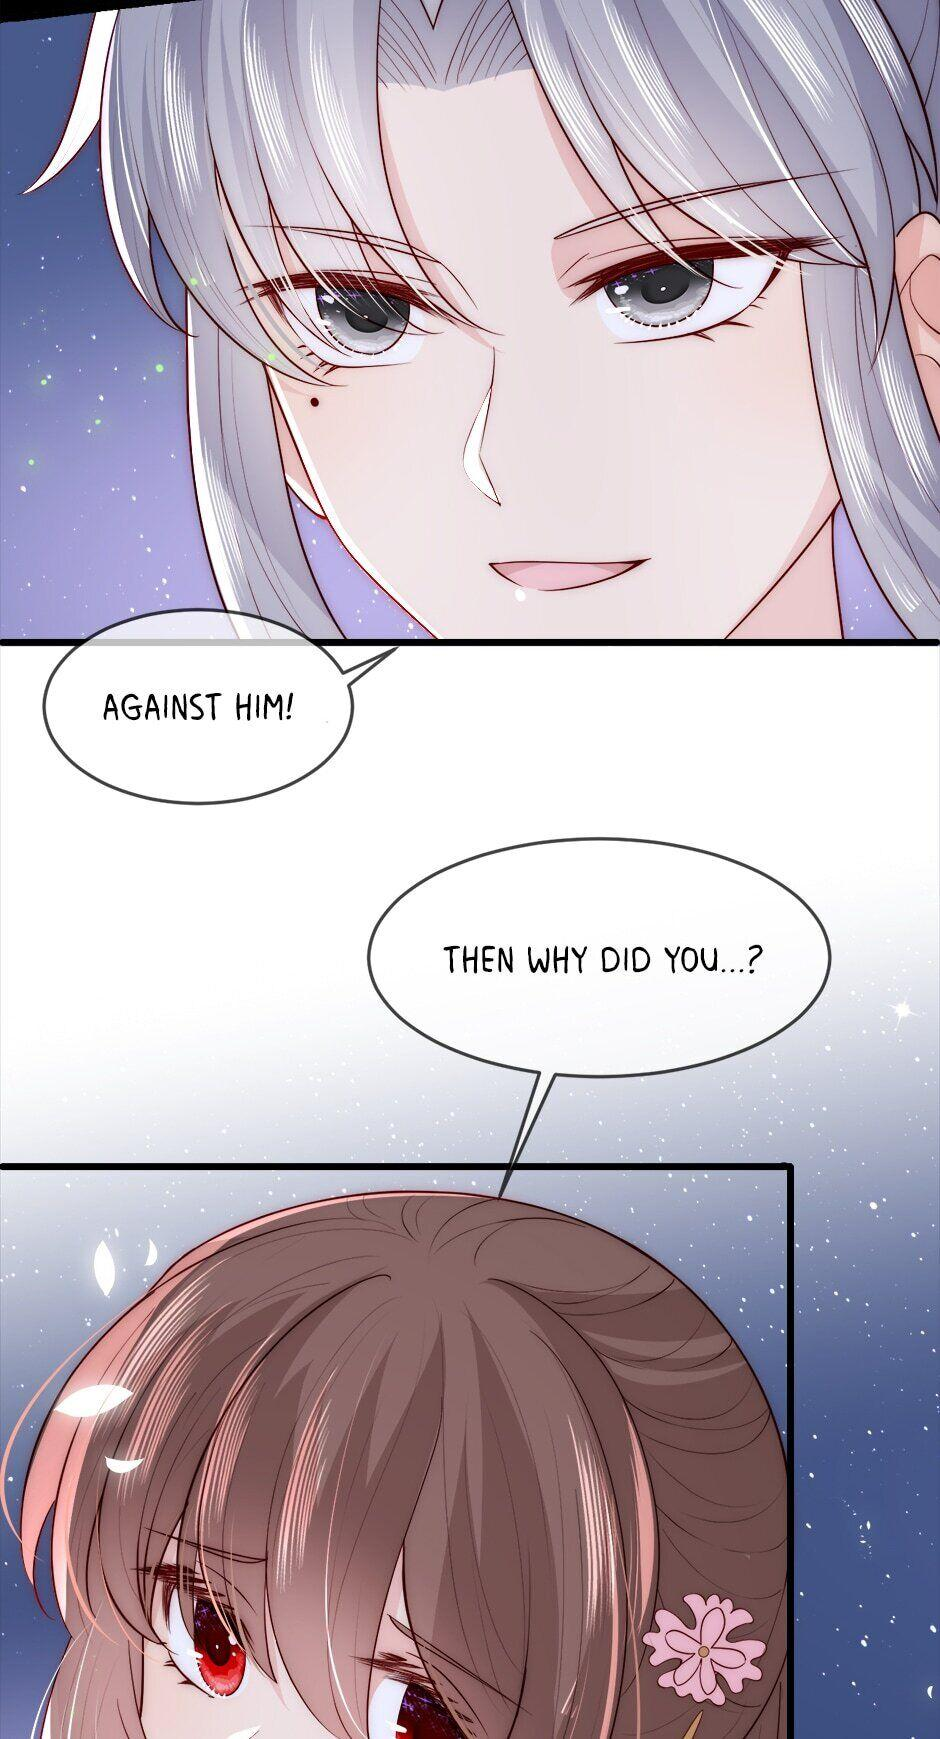 Raising The Enemy Only Brings Trouble Chapter 82 page 18 - Mangakakalots.com